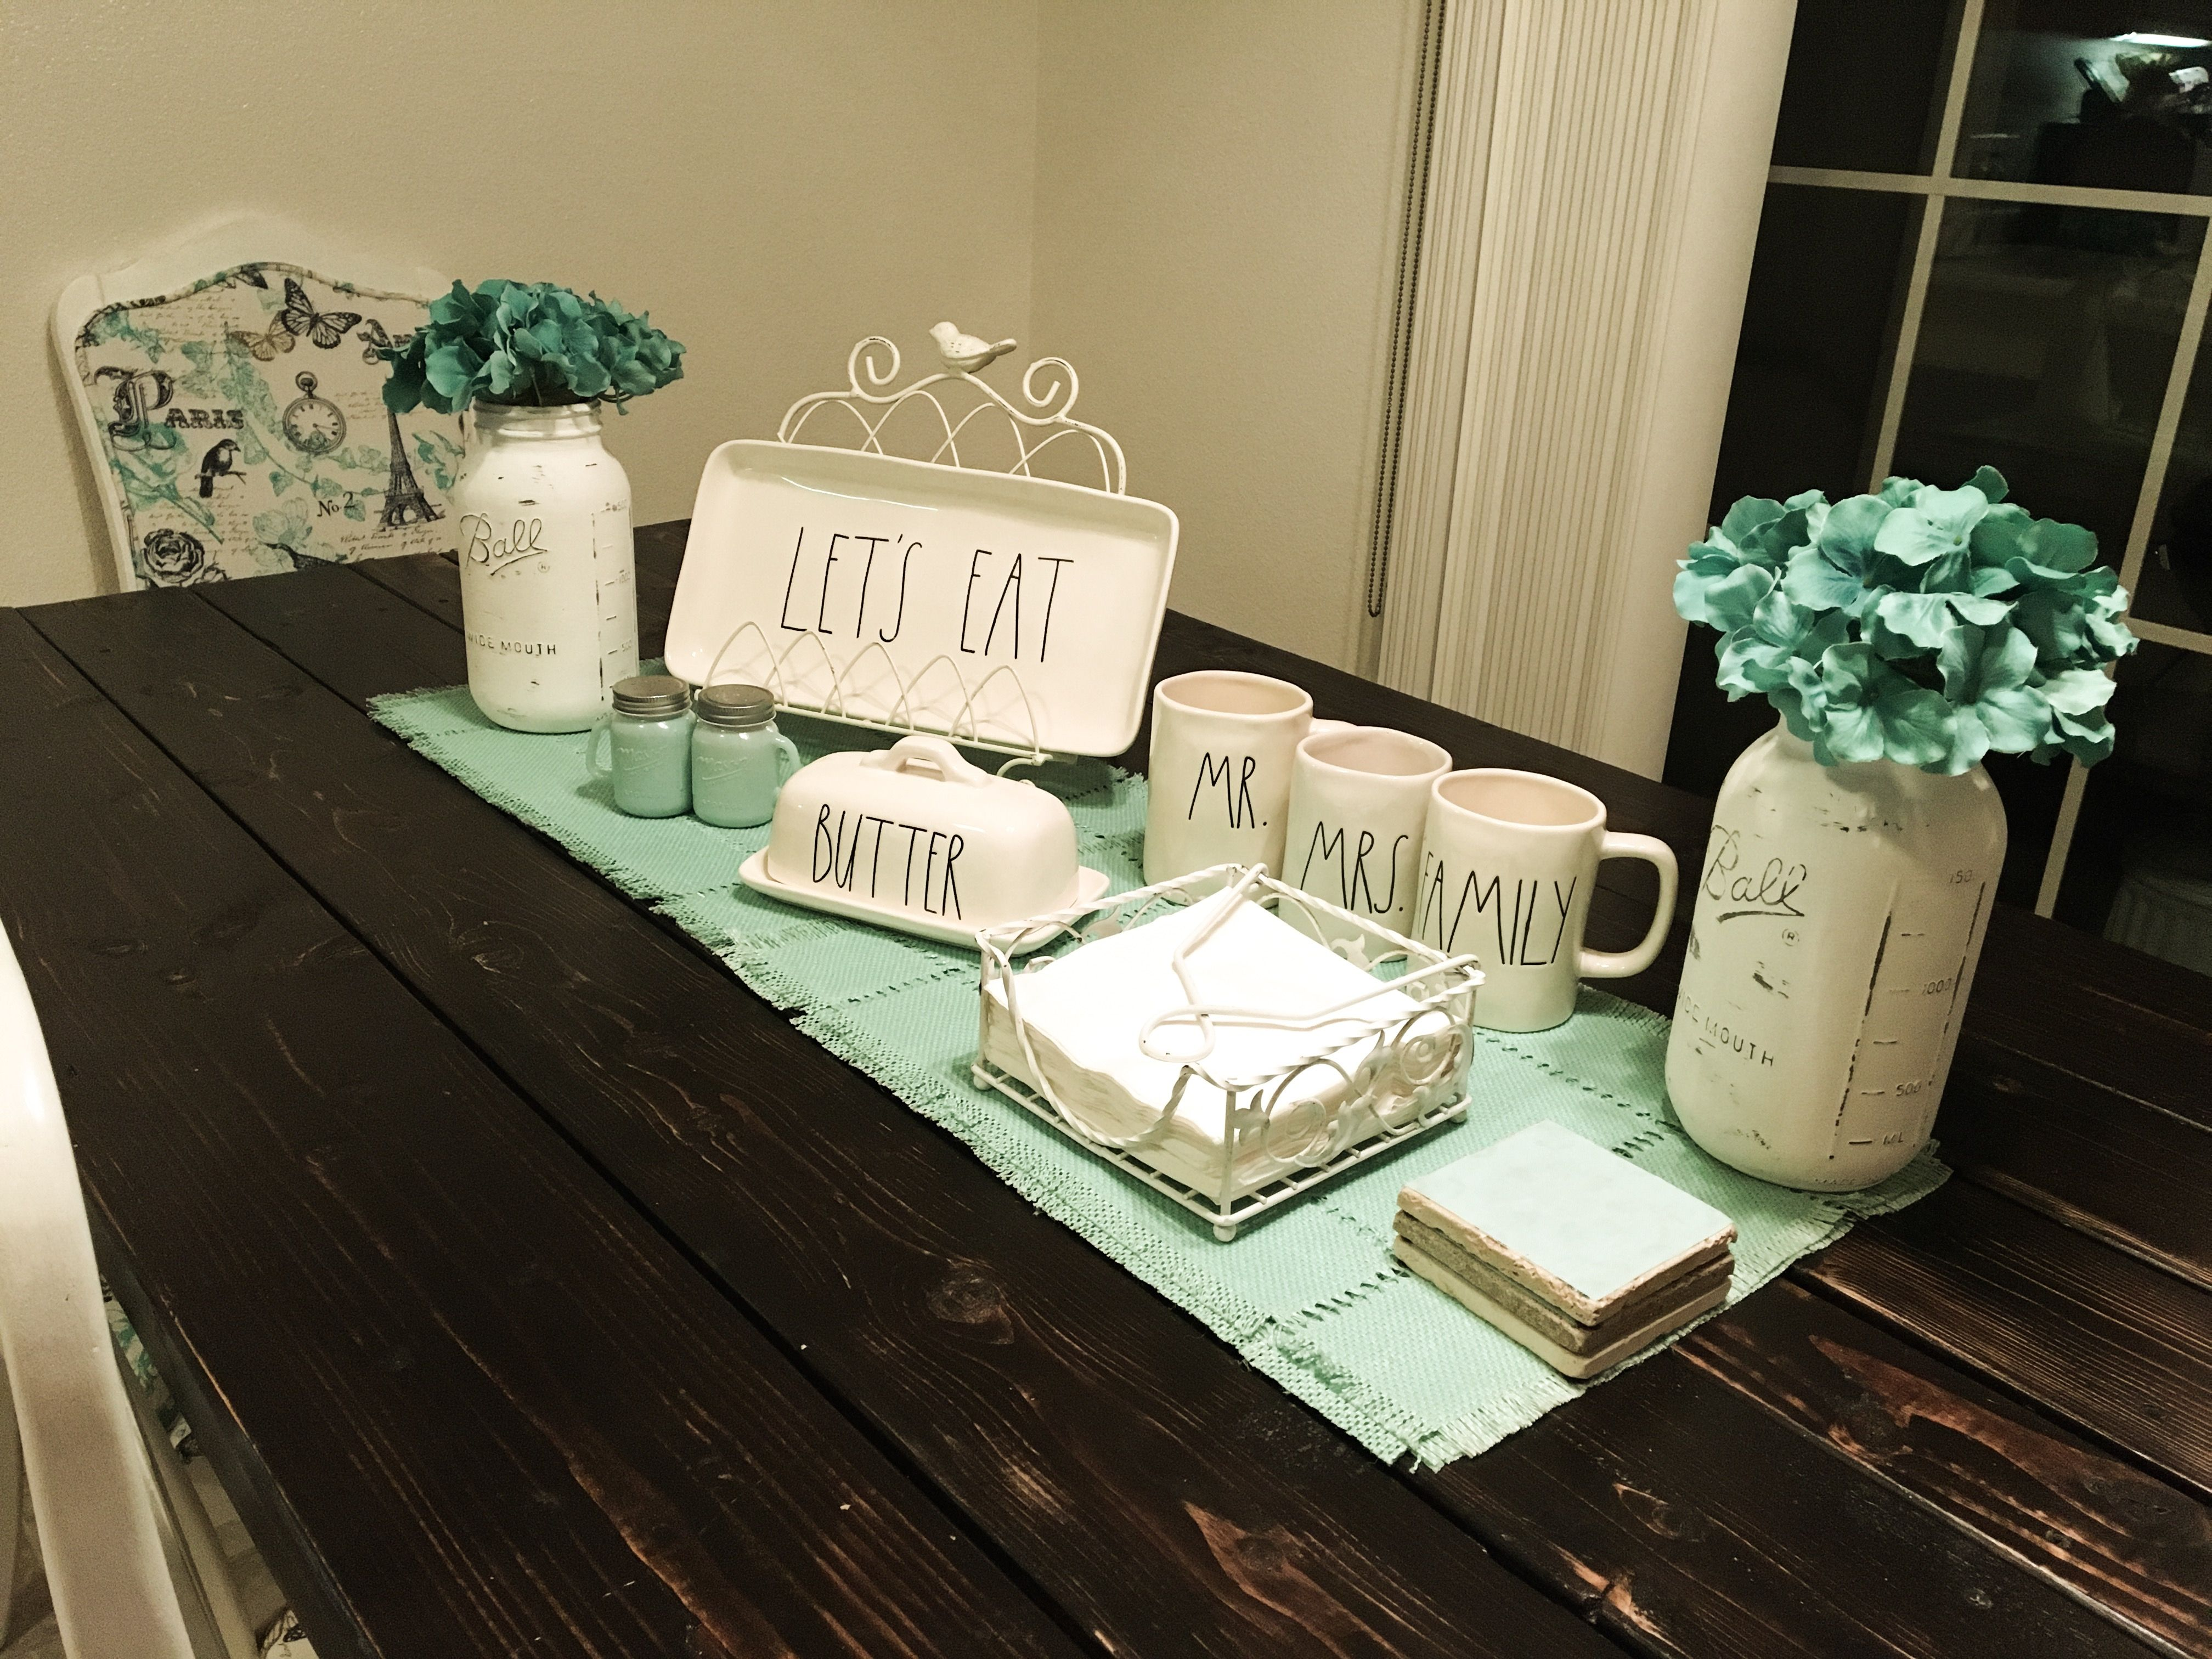 My Table Centerpiece Decor Nice And Refreshing For Spring Summer I Can